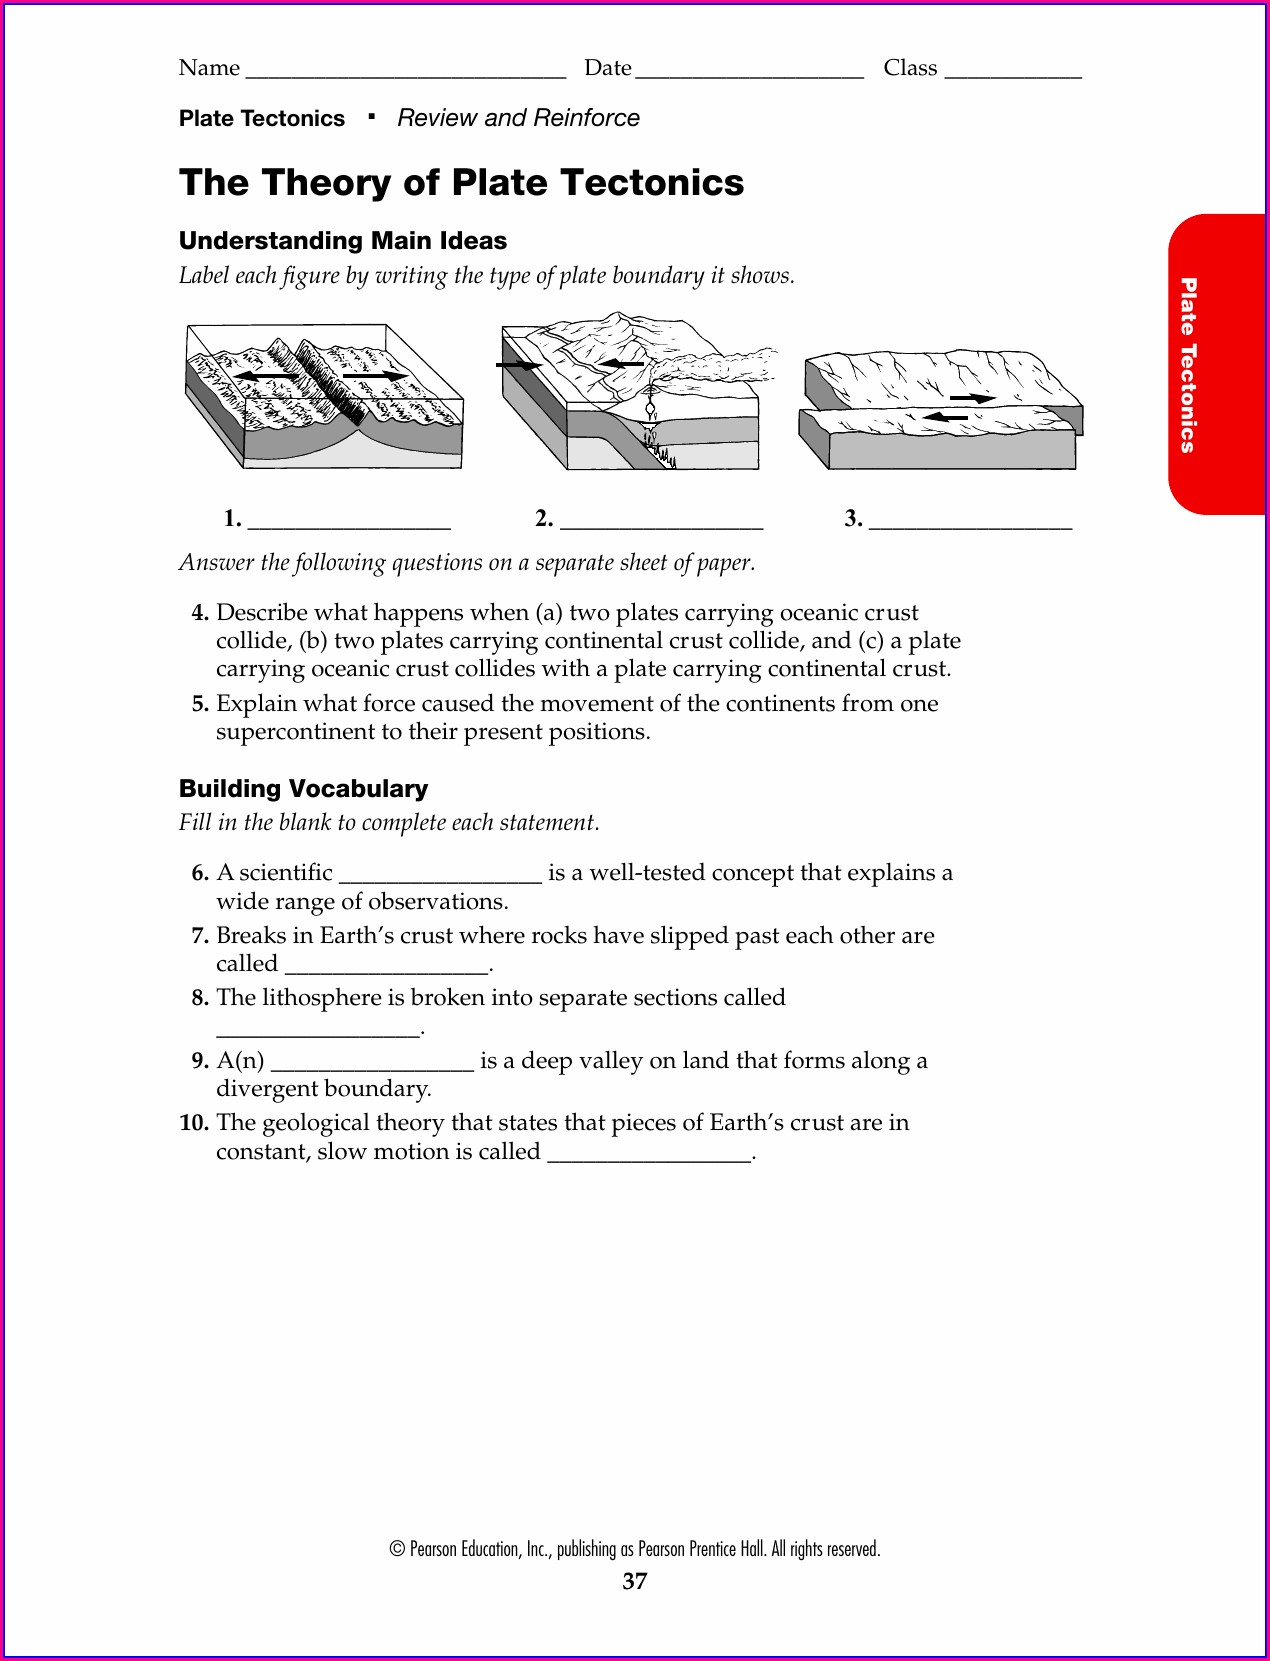 6th Grade Theory Of Plate Tectonics Worksheet Answers